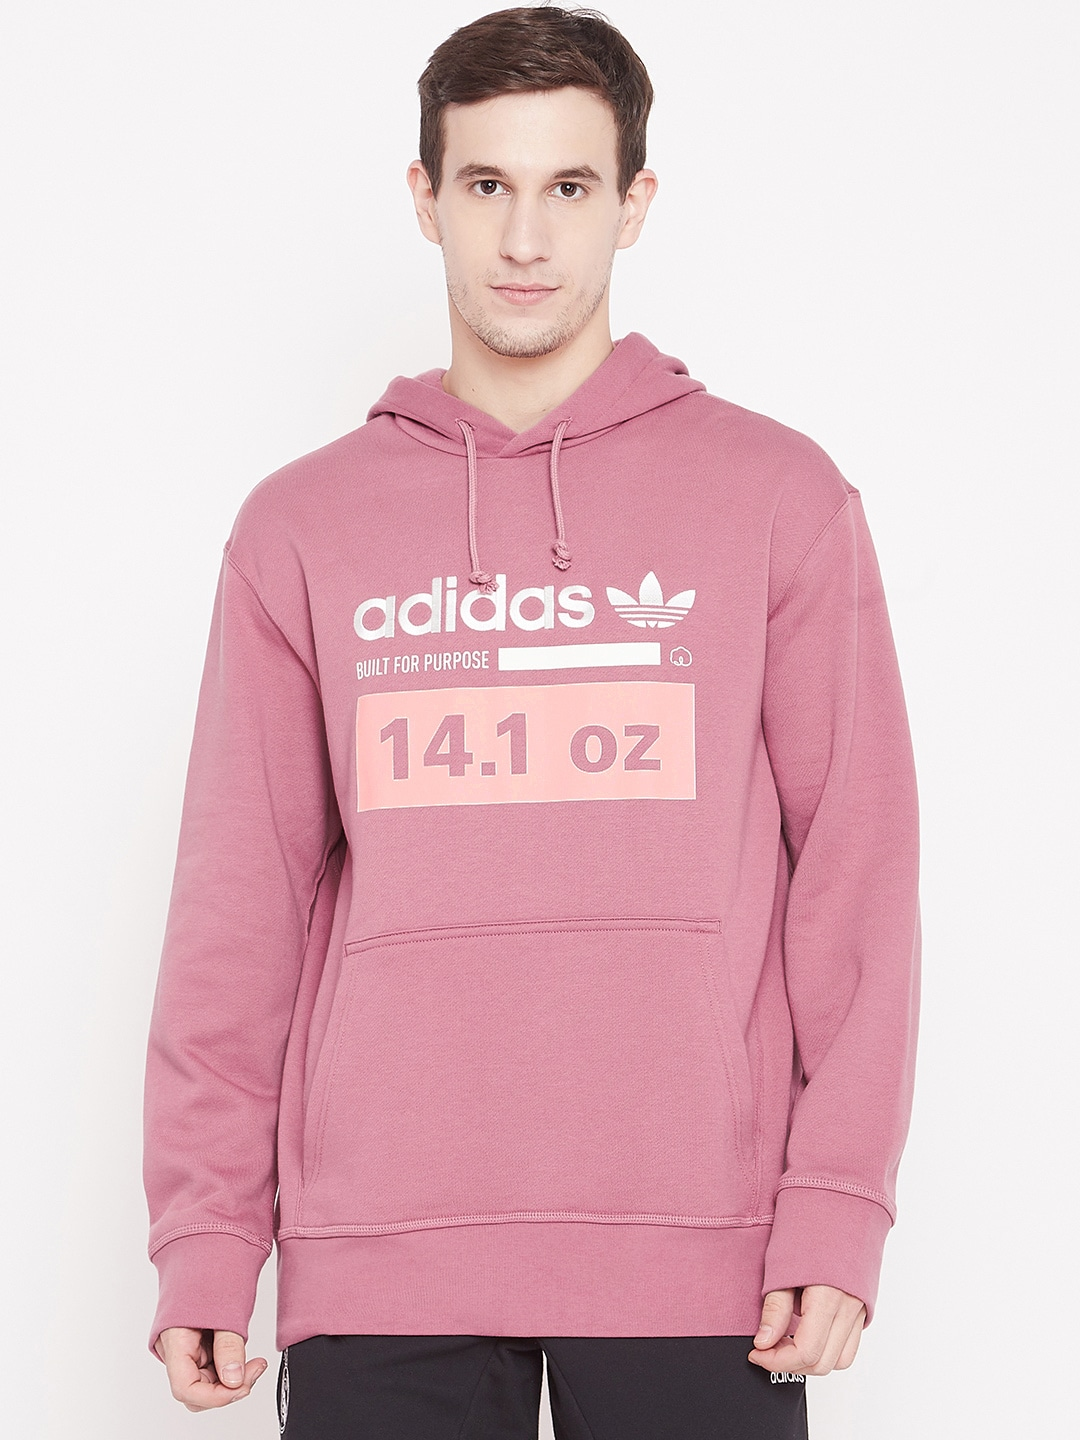 51f3f8f0 Men Sports Adidas Sweatshirts - Buy Men Sports Adidas Sweatshirts online in  India